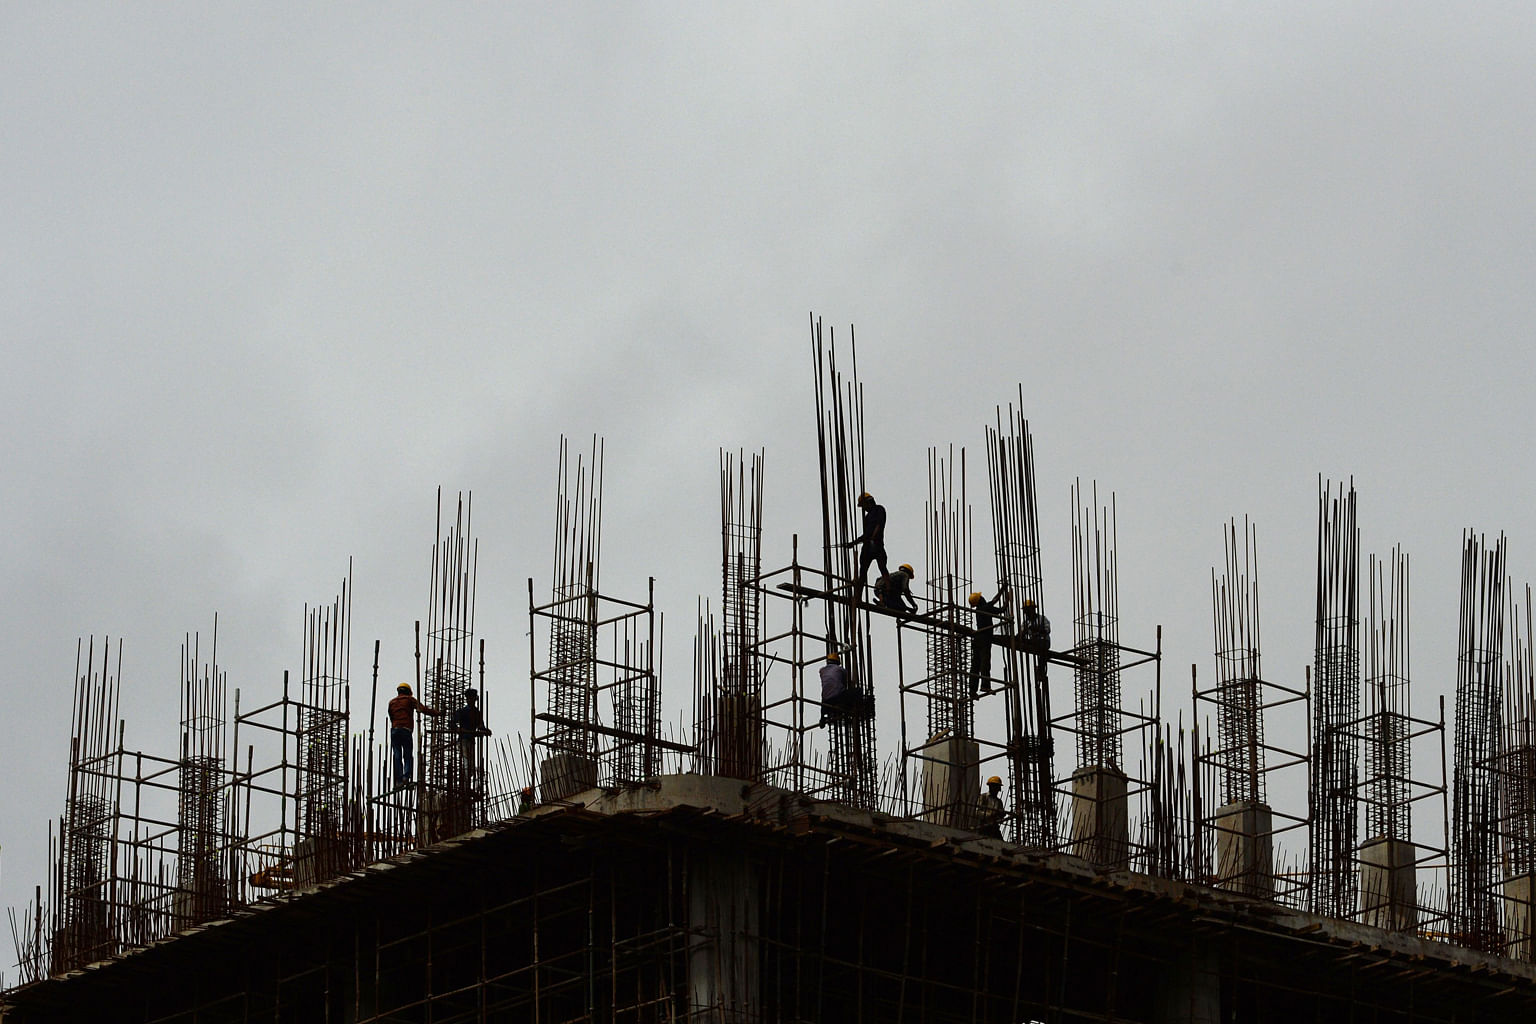 An upcoming high-rise building in the business district of Mumbai. India's economy is growing at a steady clip, with the World Bank forecasting its growth to hit 7.9 per cent by 2018 - making it a bright spot amid the gloomy outlook for developing co